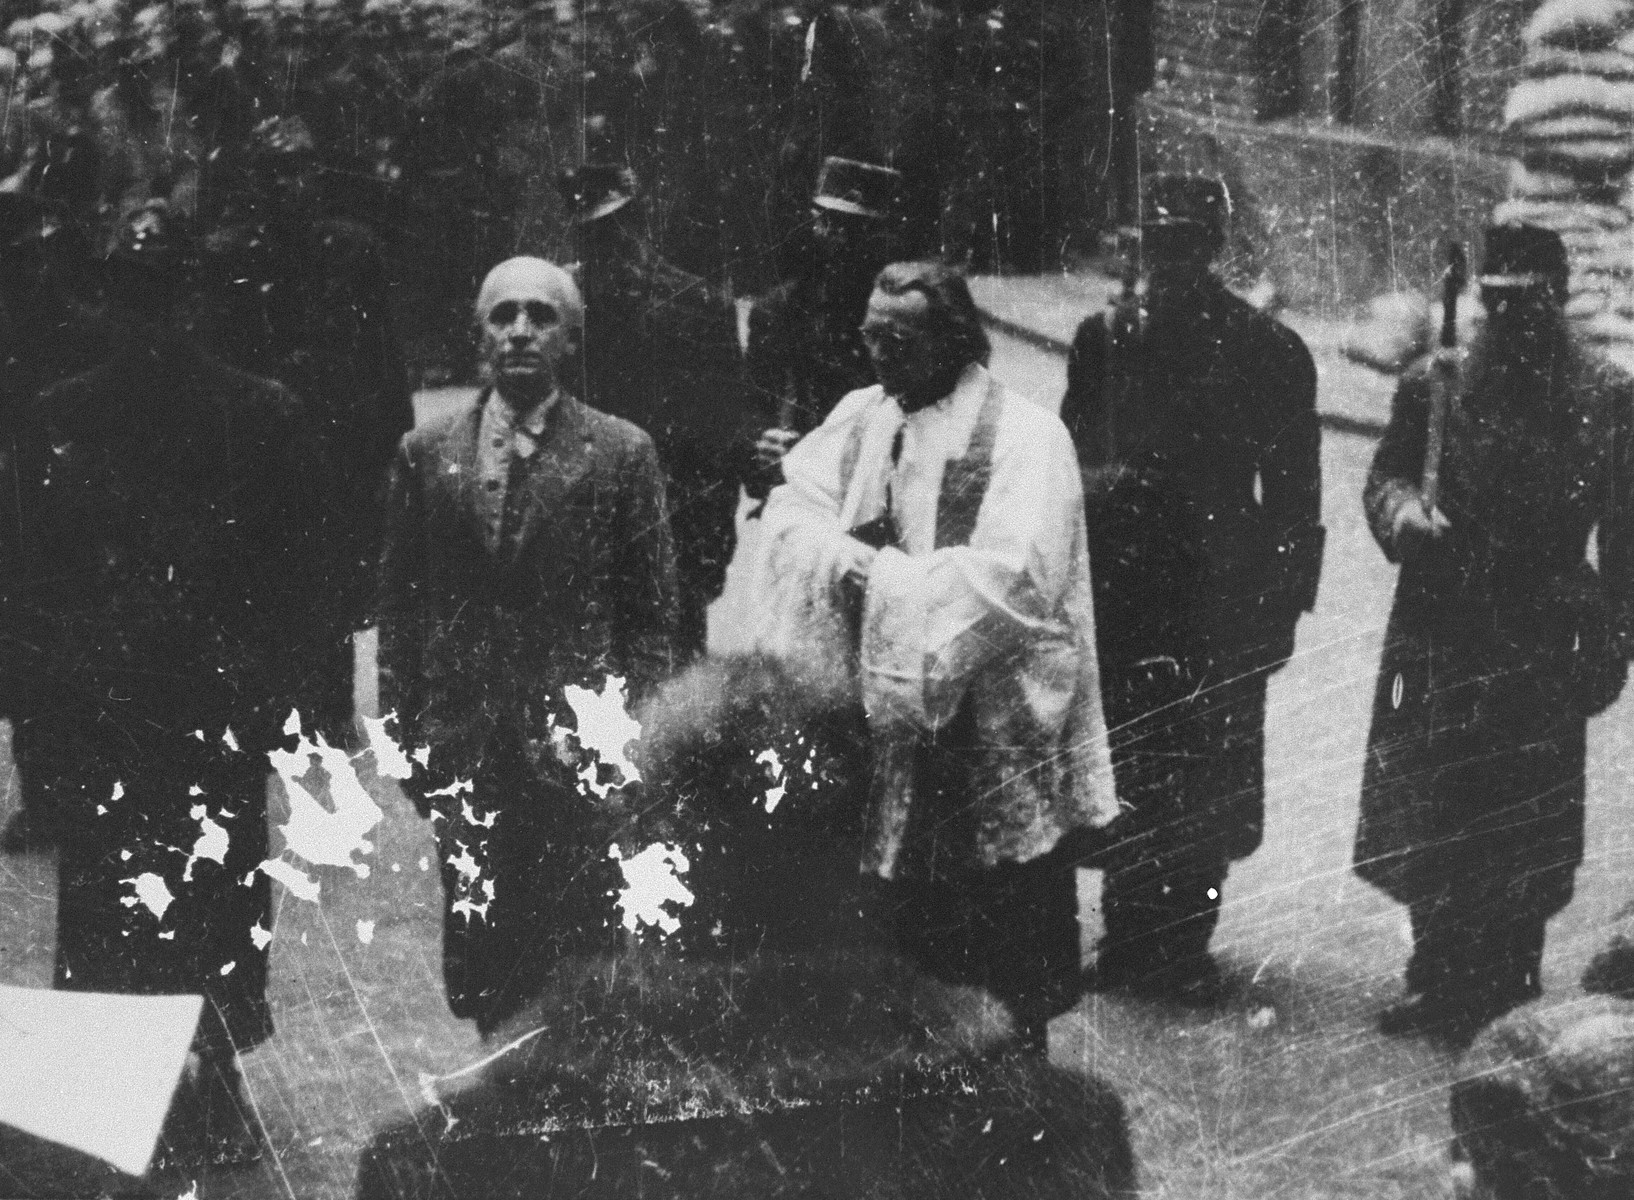 A Hungarian official reads the death sentence of former Prime Minister Dr.  Laszlo V.  Bardossy prior to his execution in the courtyard of the Academy of Music in Budapest.  The trial of Laszlo V. Bardossy was the first postwar trial of a suspected Hungarian war criminal to be carried out by the People's Tribunal in the Academy of Music in Budapest.  Bardossy was charged as former prime minister with illegally involving Hungary in war against the Soviet Union and with responsibility for allowing the massacre of Jews at Kamenets-Podolsk in July 1941.  Bardossy's trial was convened on October 29, 1945 and he was convicted on November 3, 1945.  His execution was carried out on January 10, 1946.